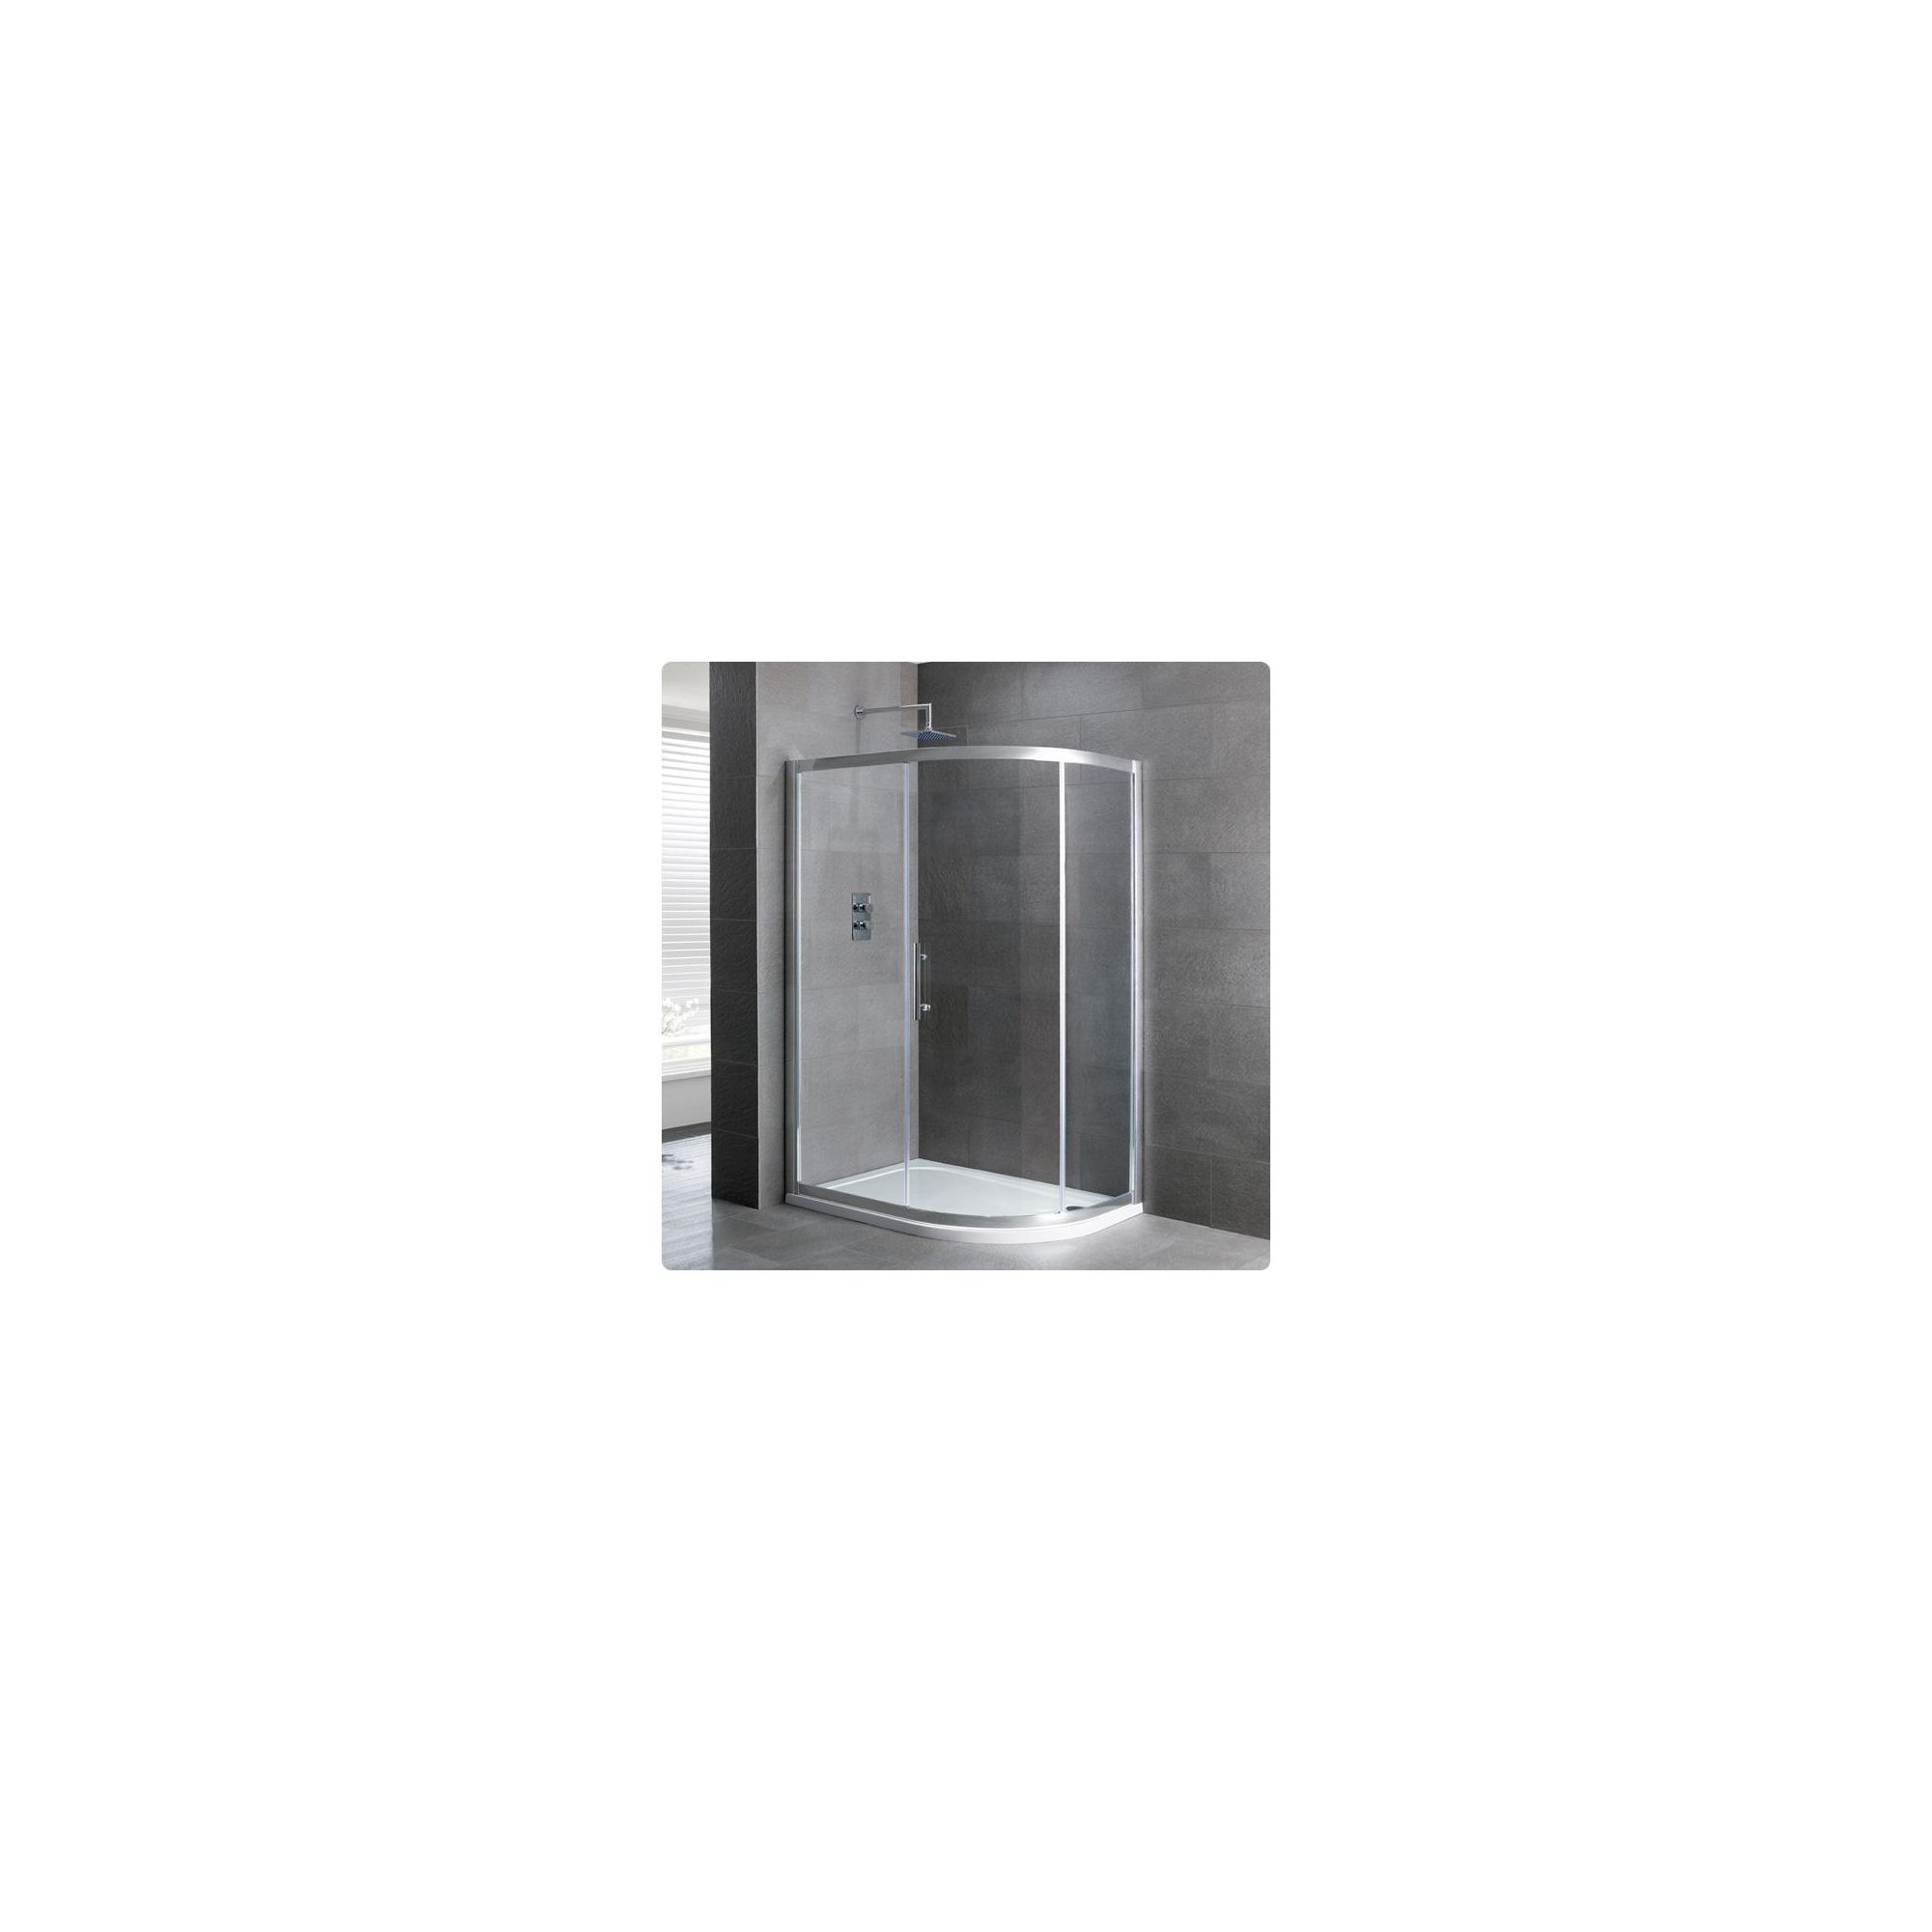 Duchy Select Silver 1 Door Offset Quadrant Shower Enclosure 900mm x 760mm, Standard Tray, 6mm Glass at Tesco Direct